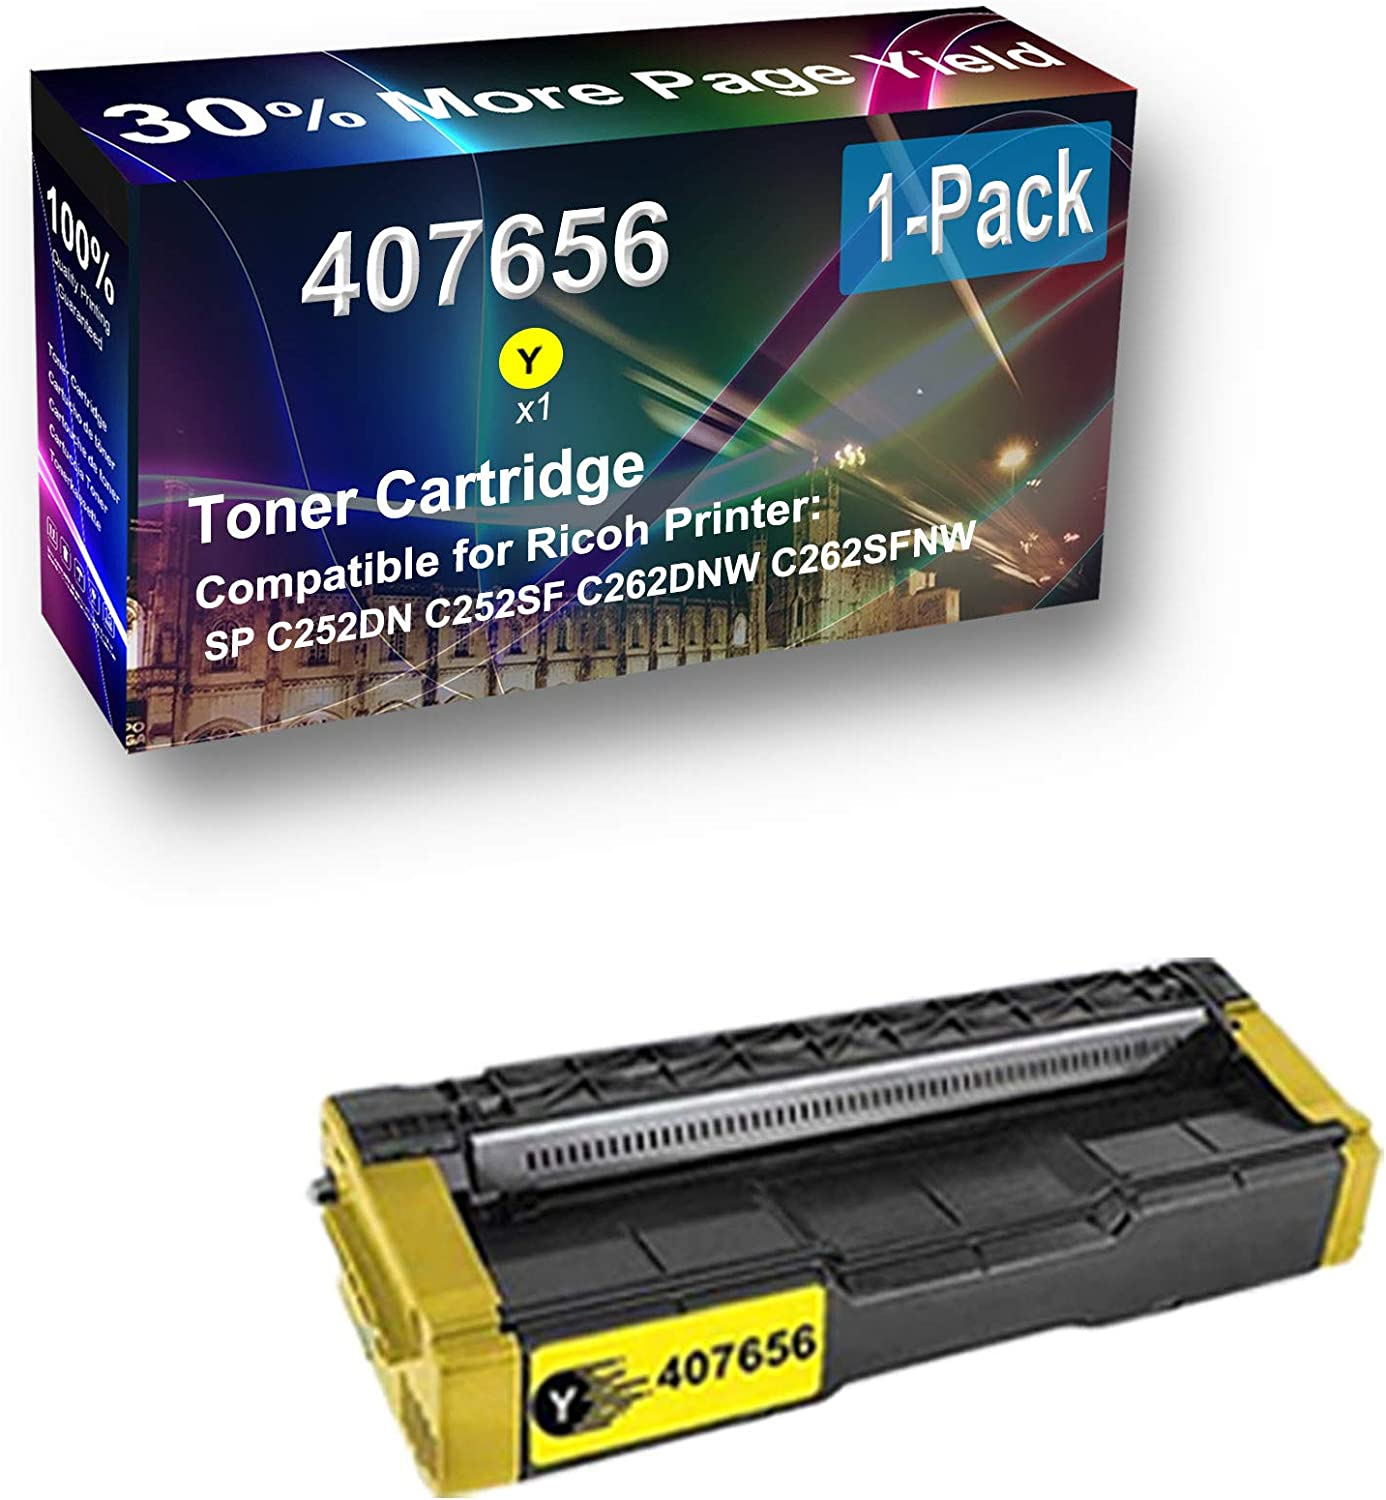 1-Pack (Yellow) Compatible High Capacity 407656 Toner Cartridge Used for Ricoh SP C252DN C252SF C262DNW C262SFNW Printer